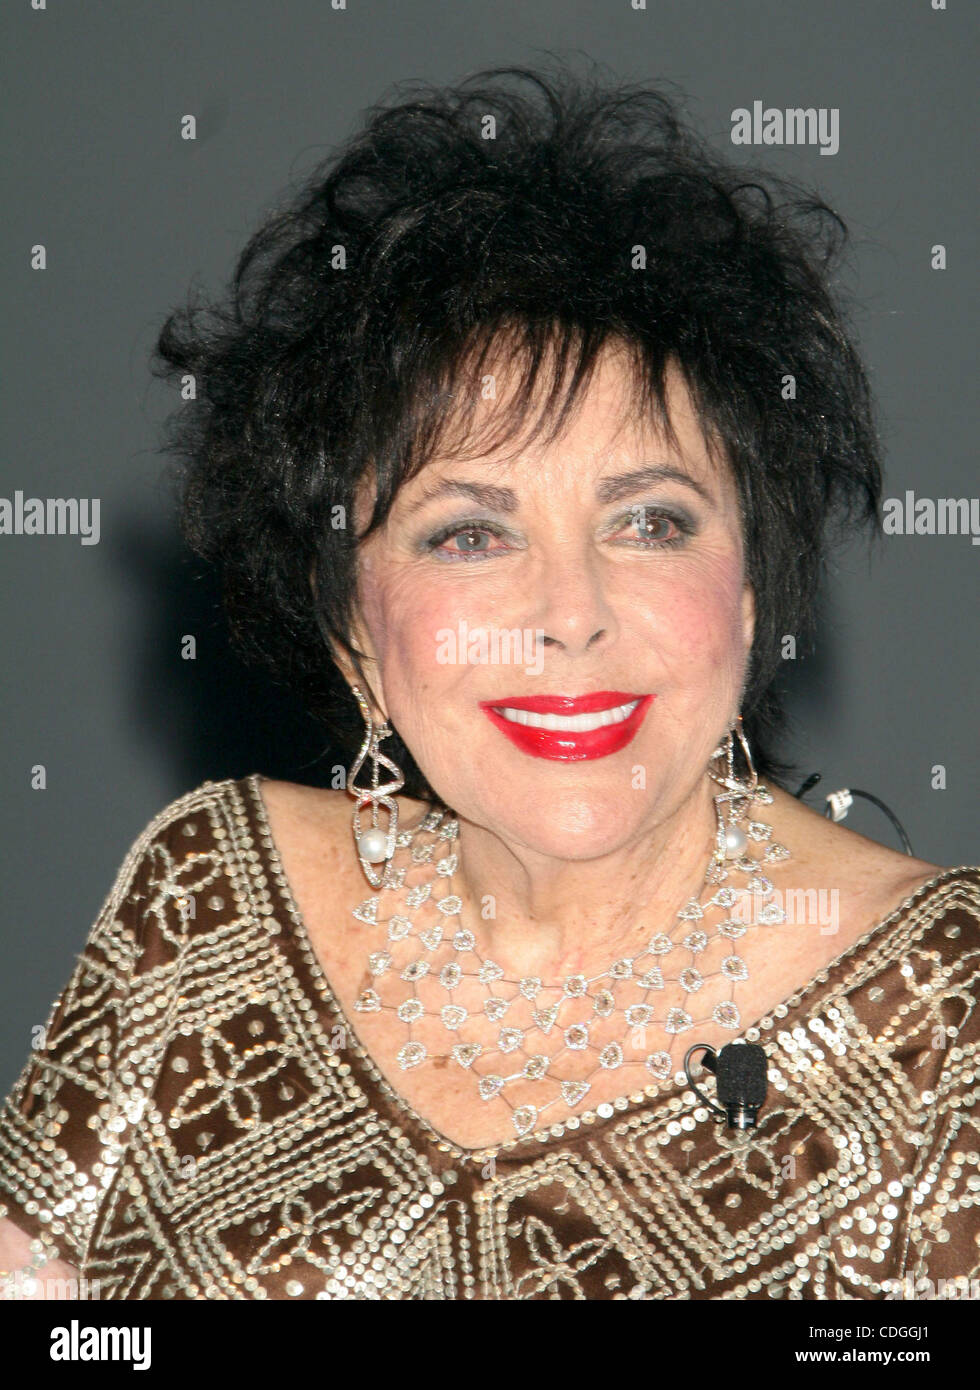 FILE PHOTO   ELIZABETH TAYLOR, 79, The Oscar Winning Movie Goddess And  Pioneering AIDS Activist Whose Off Screen Marriages, Divorces And Death  Defying ...